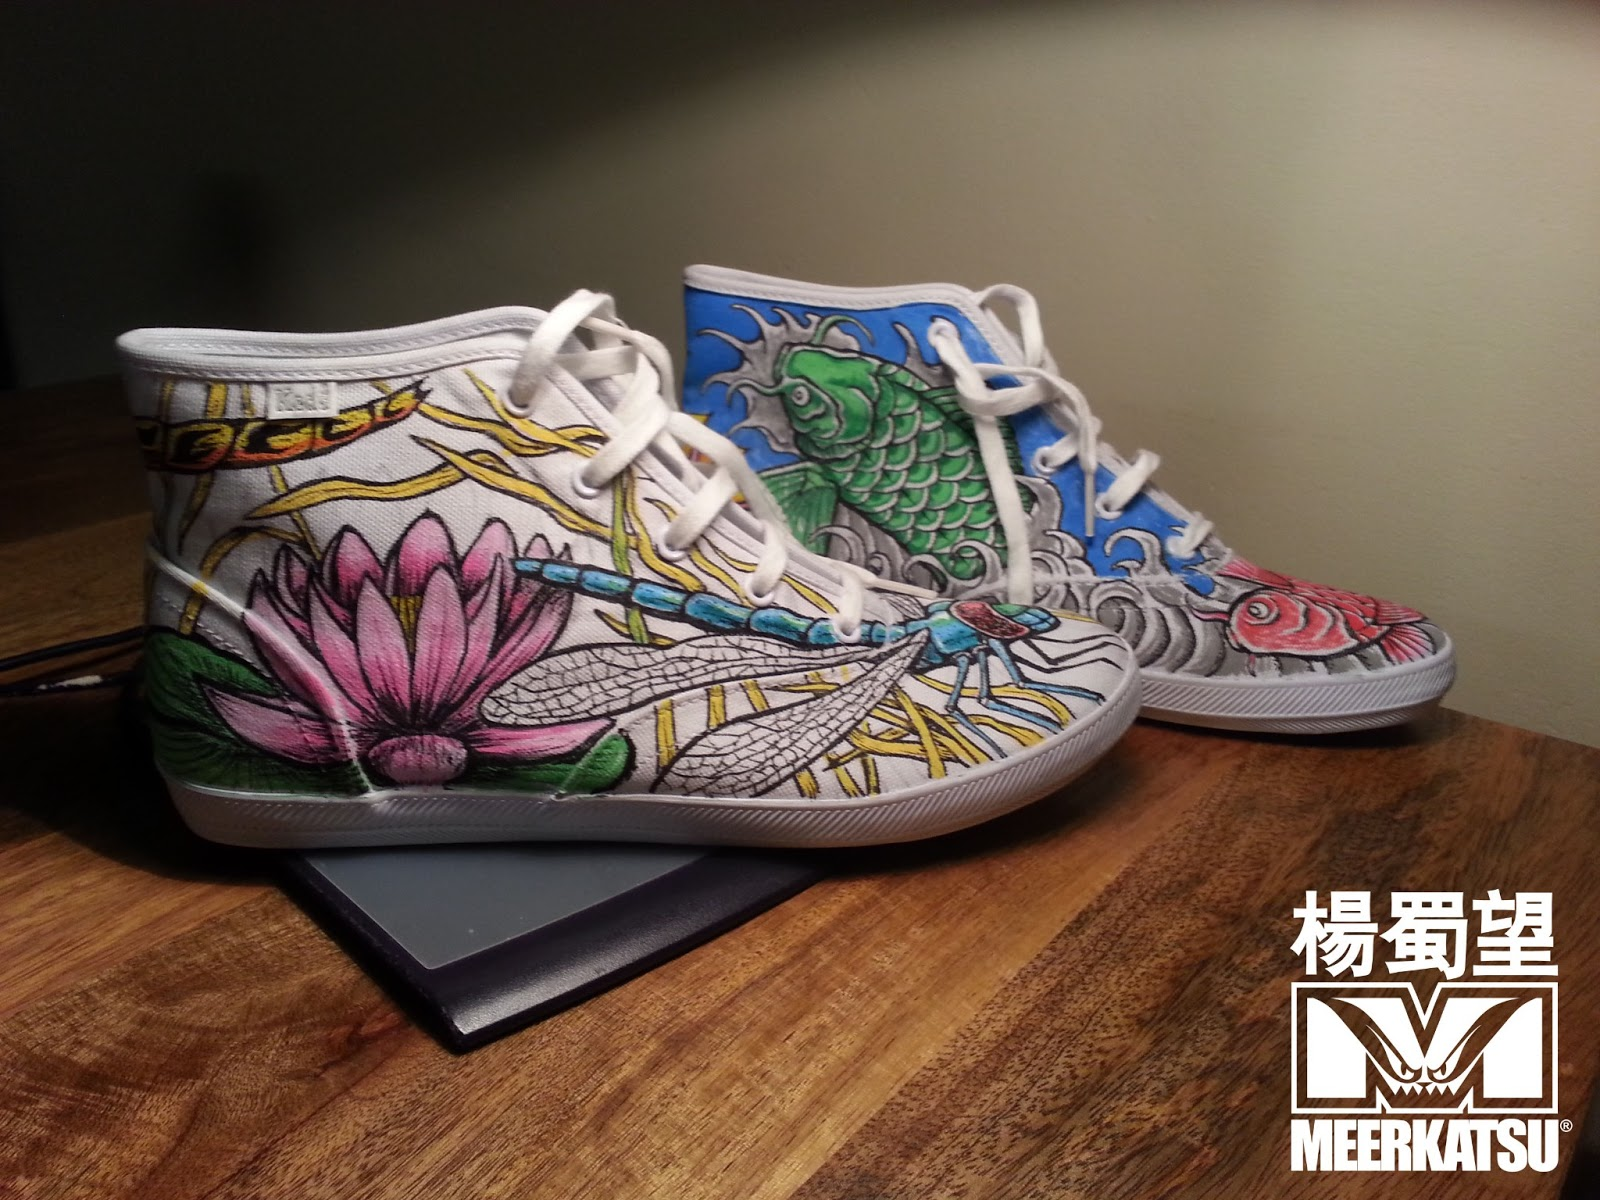 Drawn shoe japanese For the a on shoe